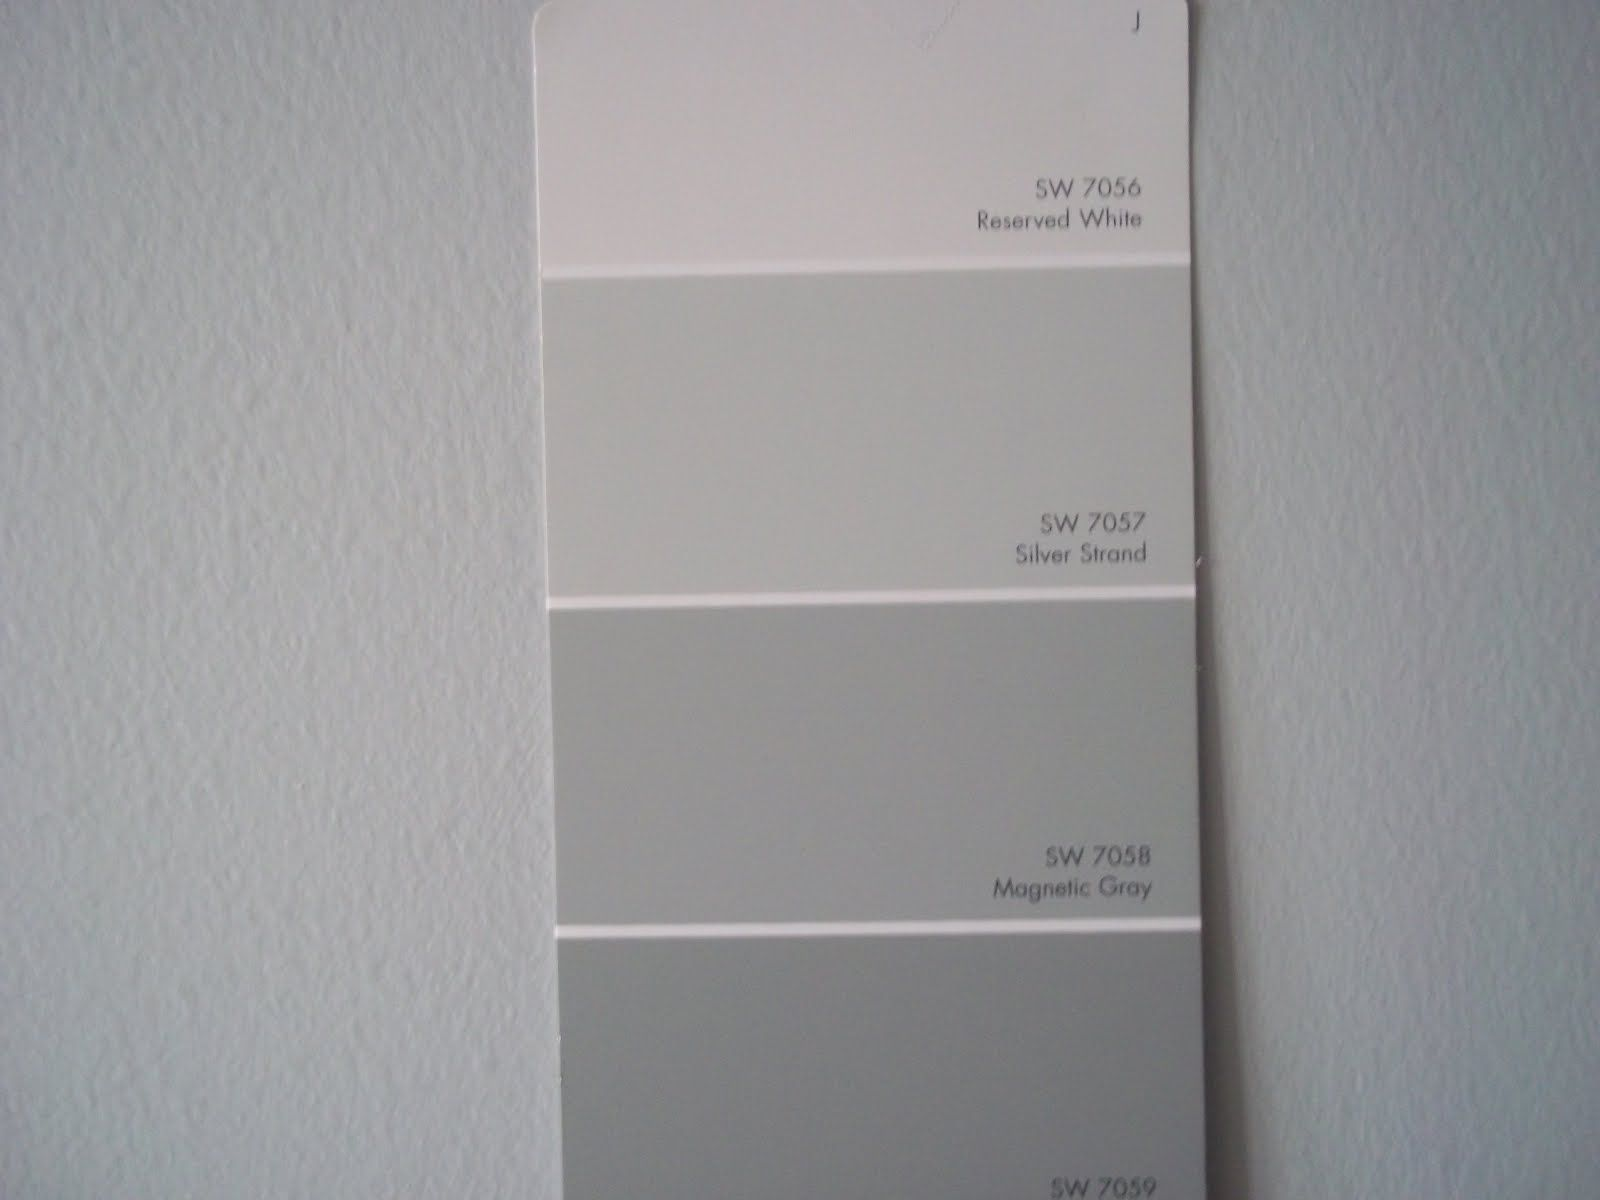 sherwin williams silver strand paint colors pinterest sherwin williams silver strand. Black Bedroom Furniture Sets. Home Design Ideas